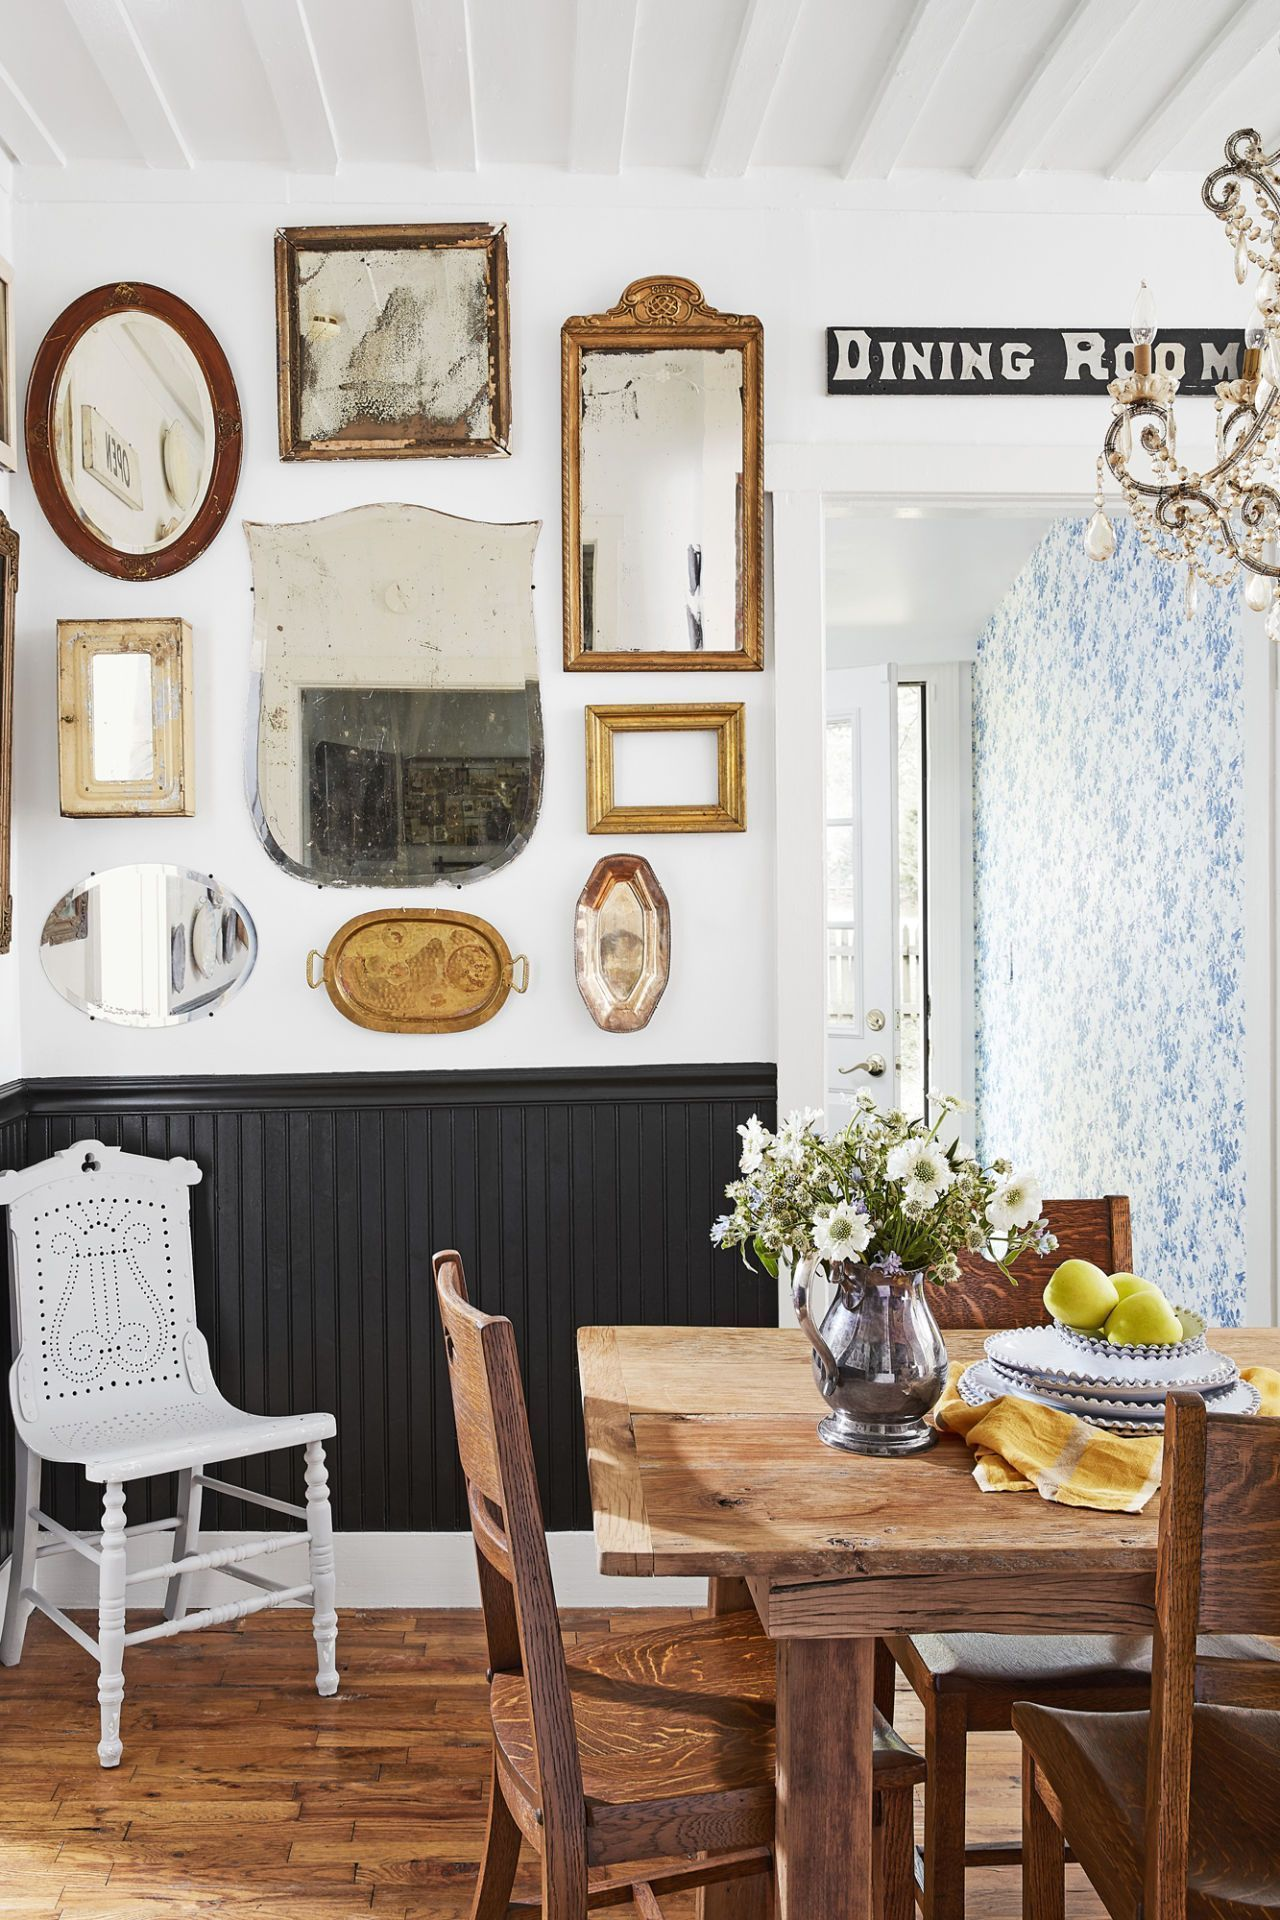 85 Best Dining Room Wall Decorating Ideas On A Budget 2018 Gallery Wall Ideas Kitchen Wa Dining Room Wall Decor Dining Room Small Farmhouse Dining Rooms Decor